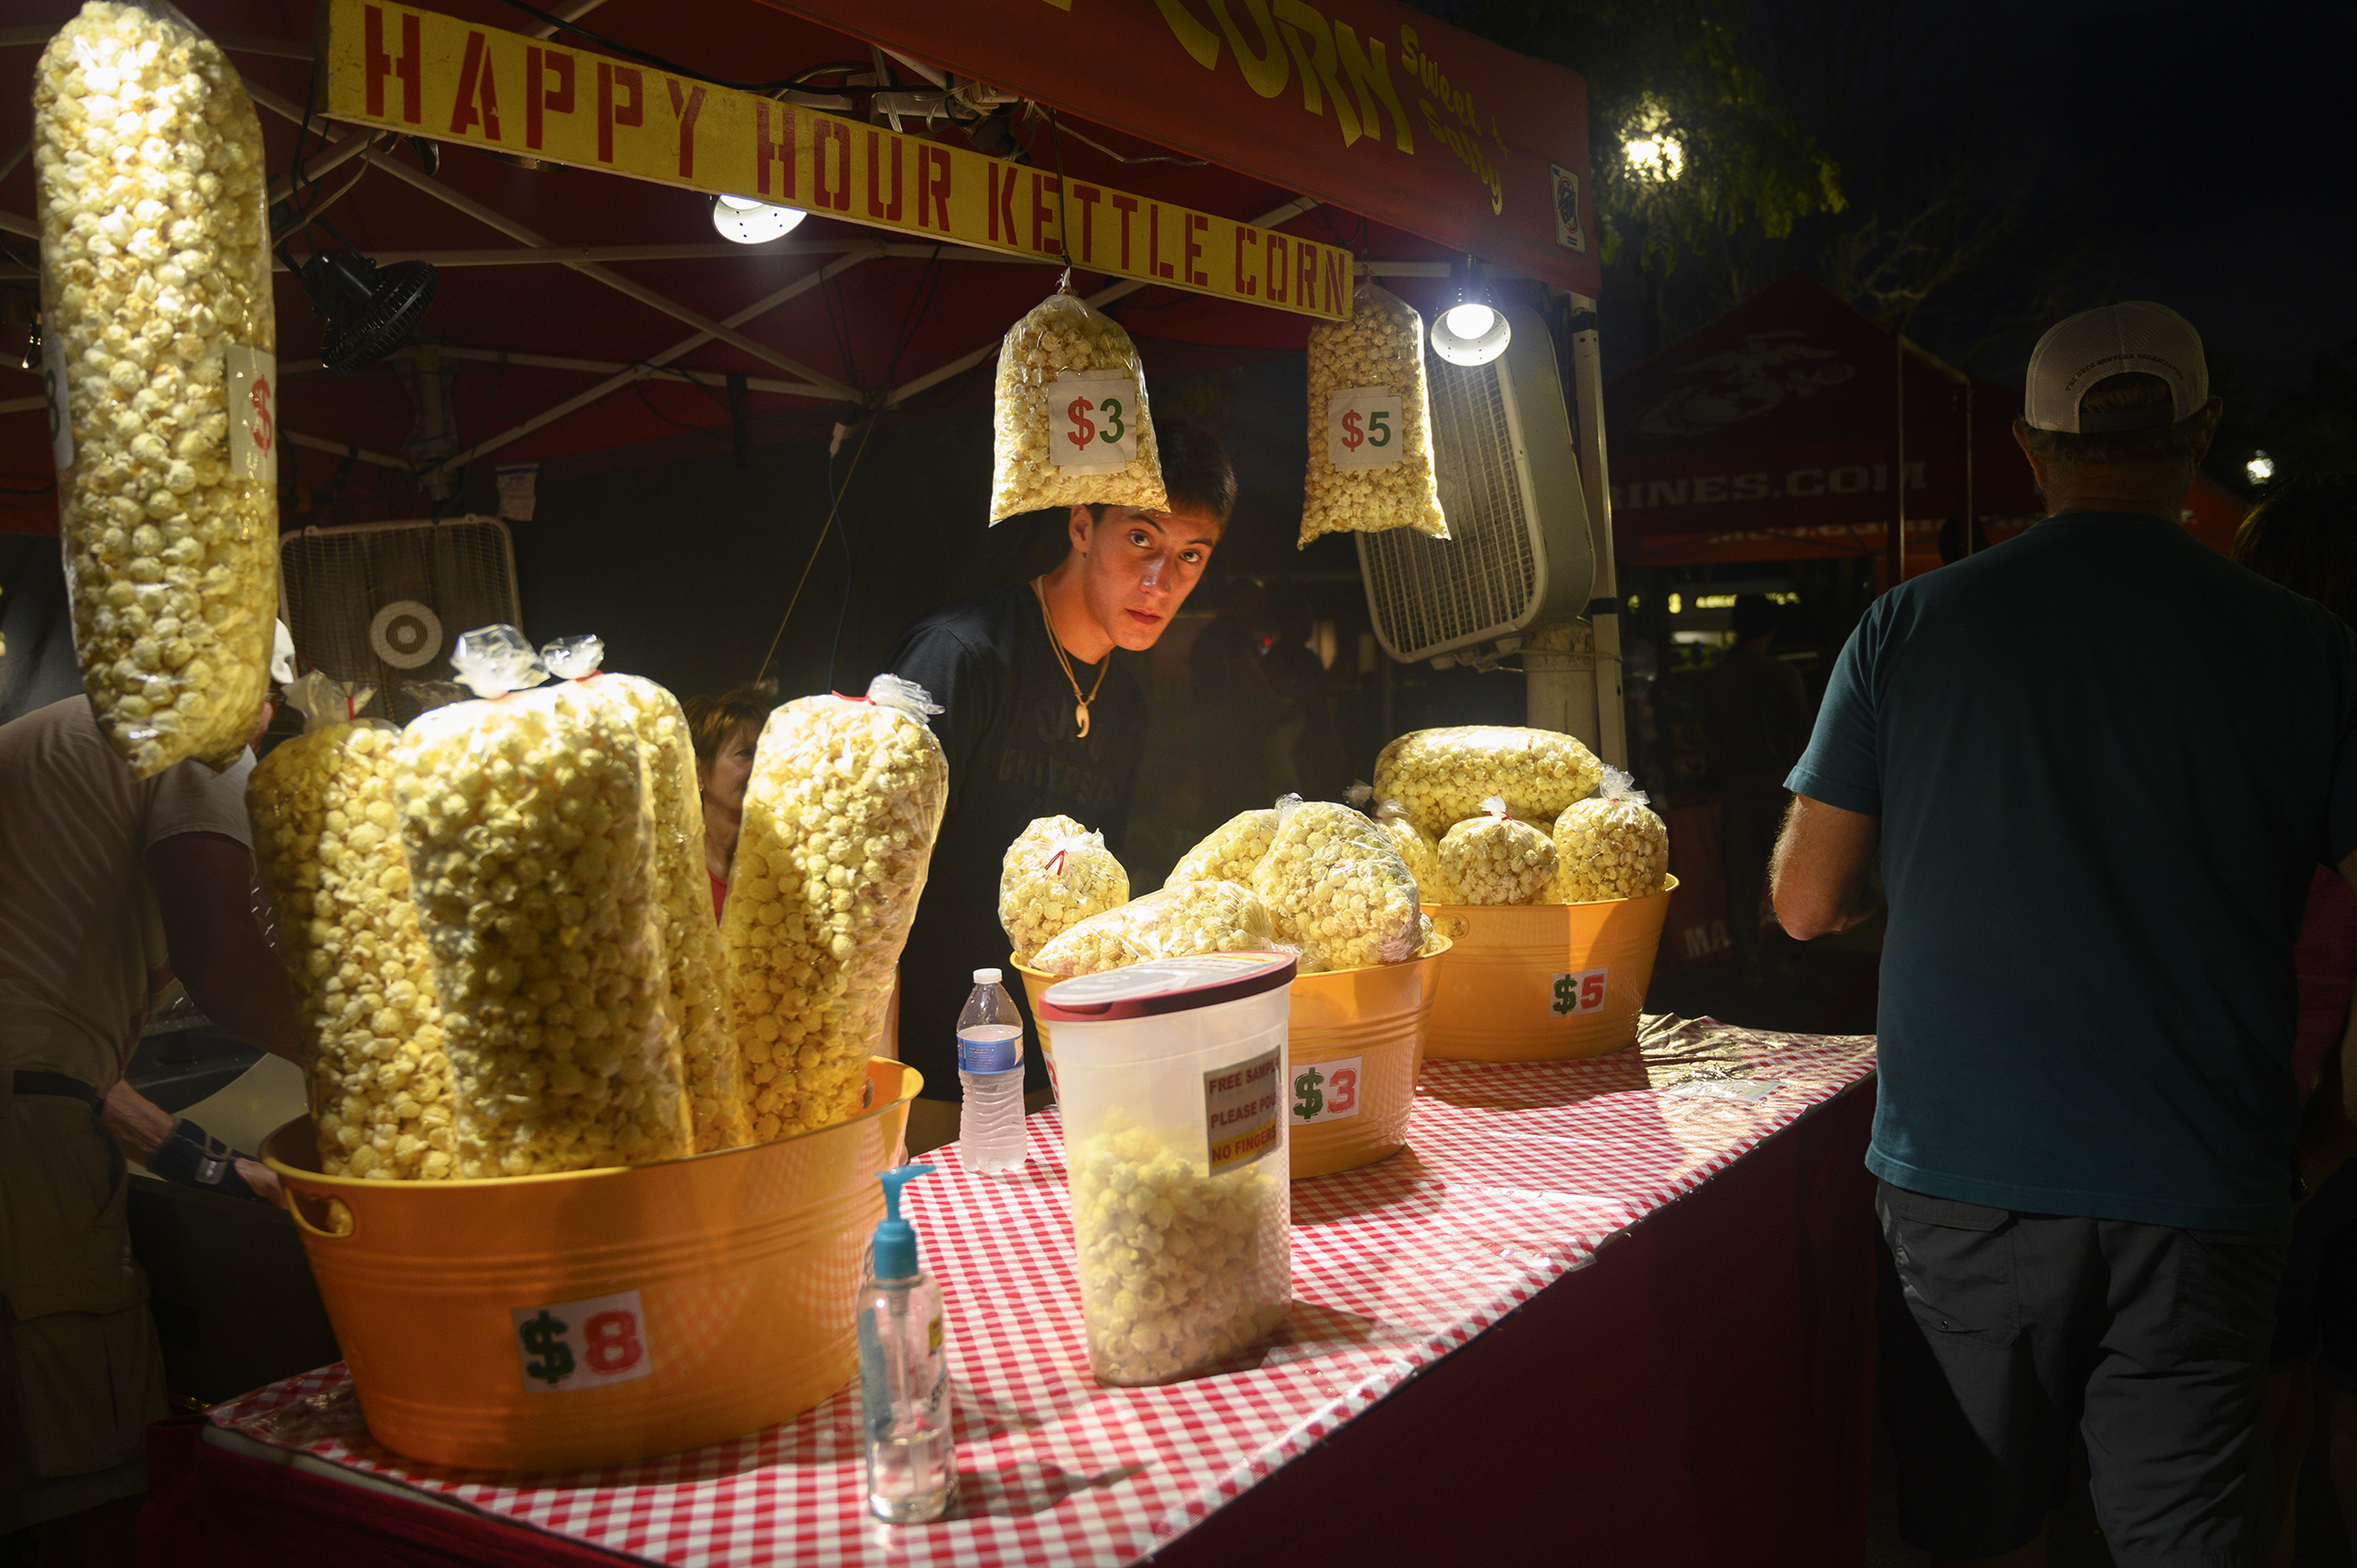 A Waterfire vendor waits for customers at Happy Hour Kettle Corn. Photo by Jade Campos